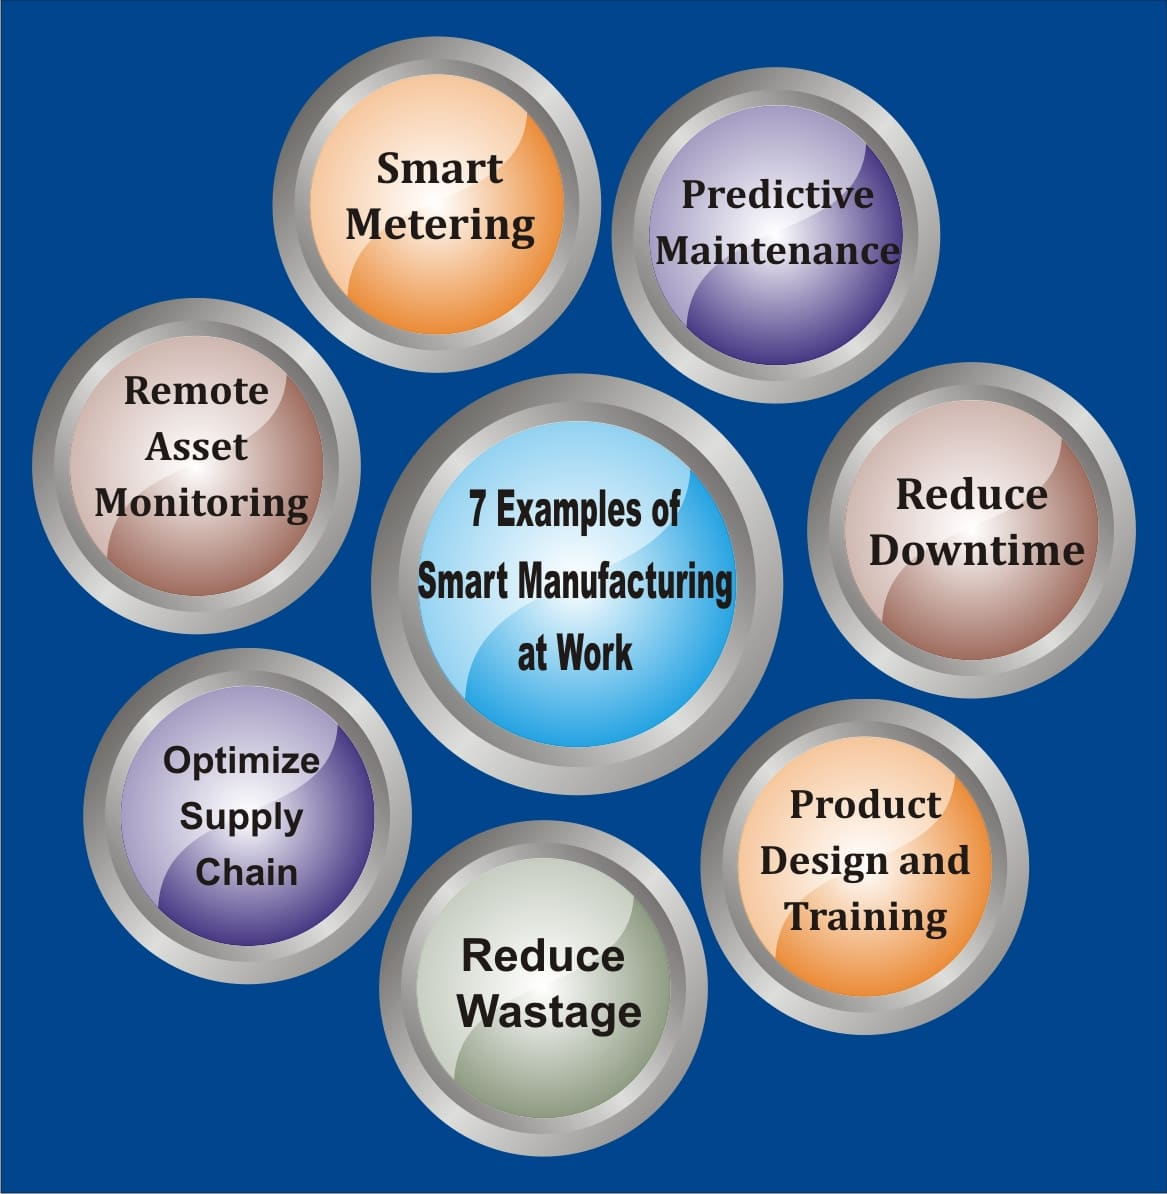 7 Examples of Smart Manufacturing at Work